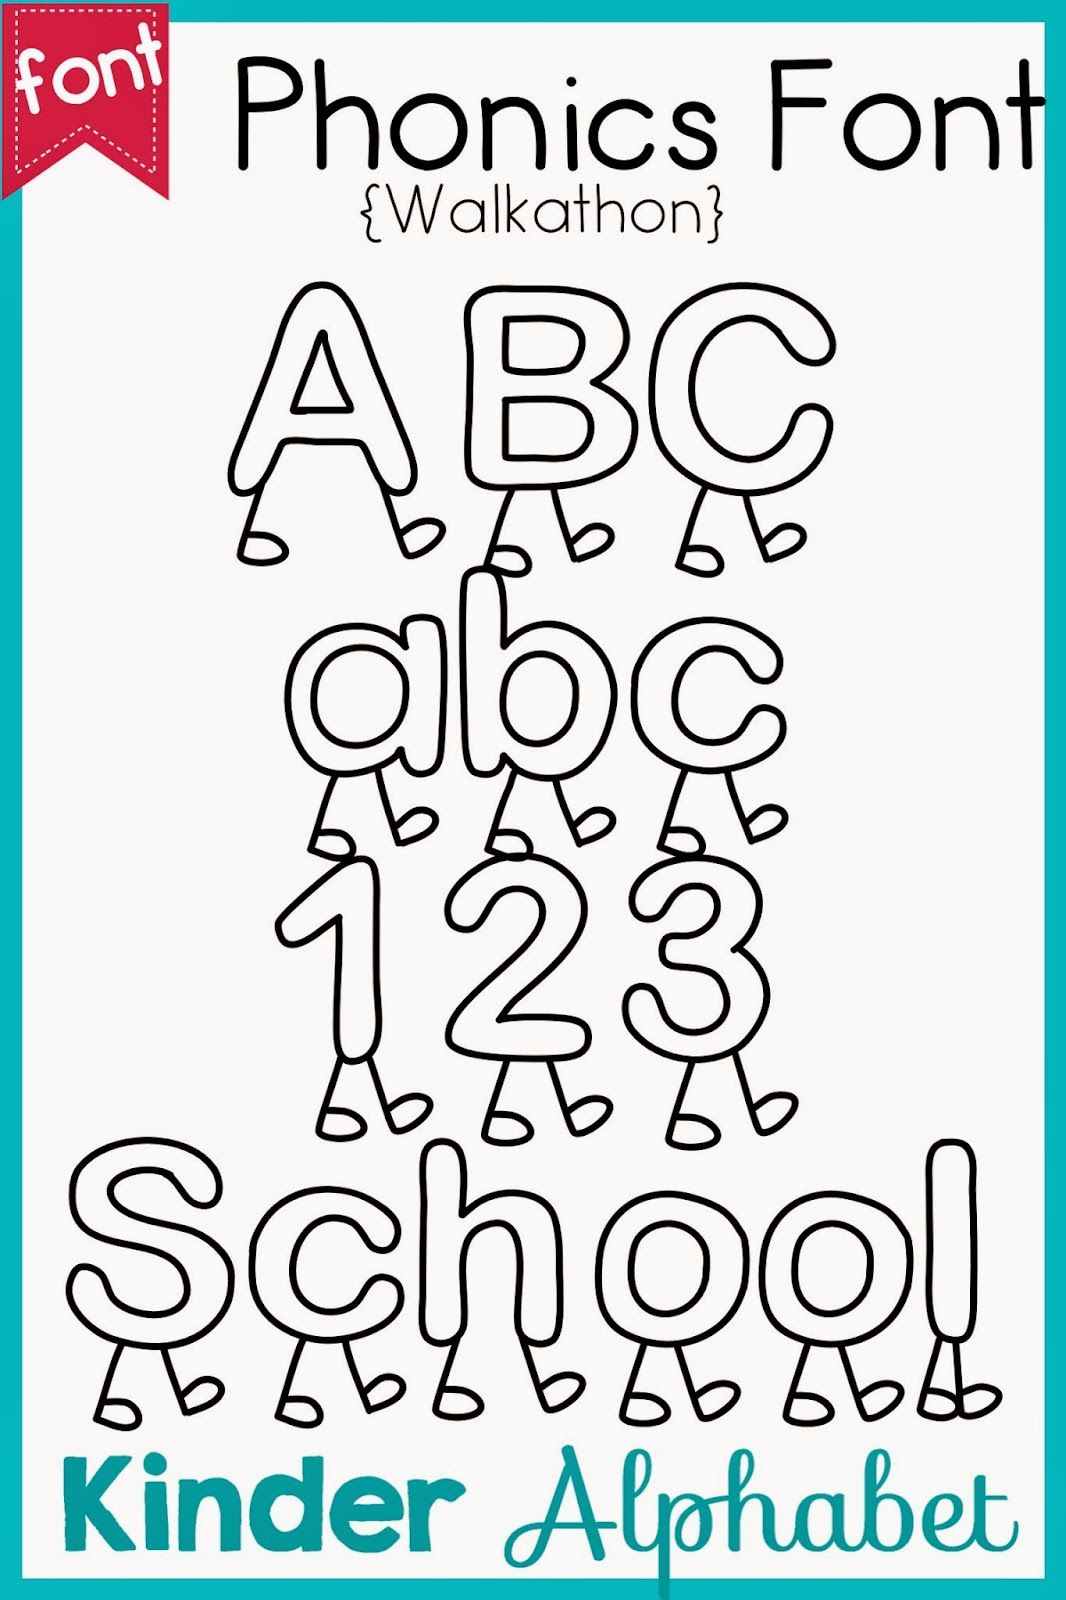 32 Fun Phonics Fonts For Teachers This One Is Called